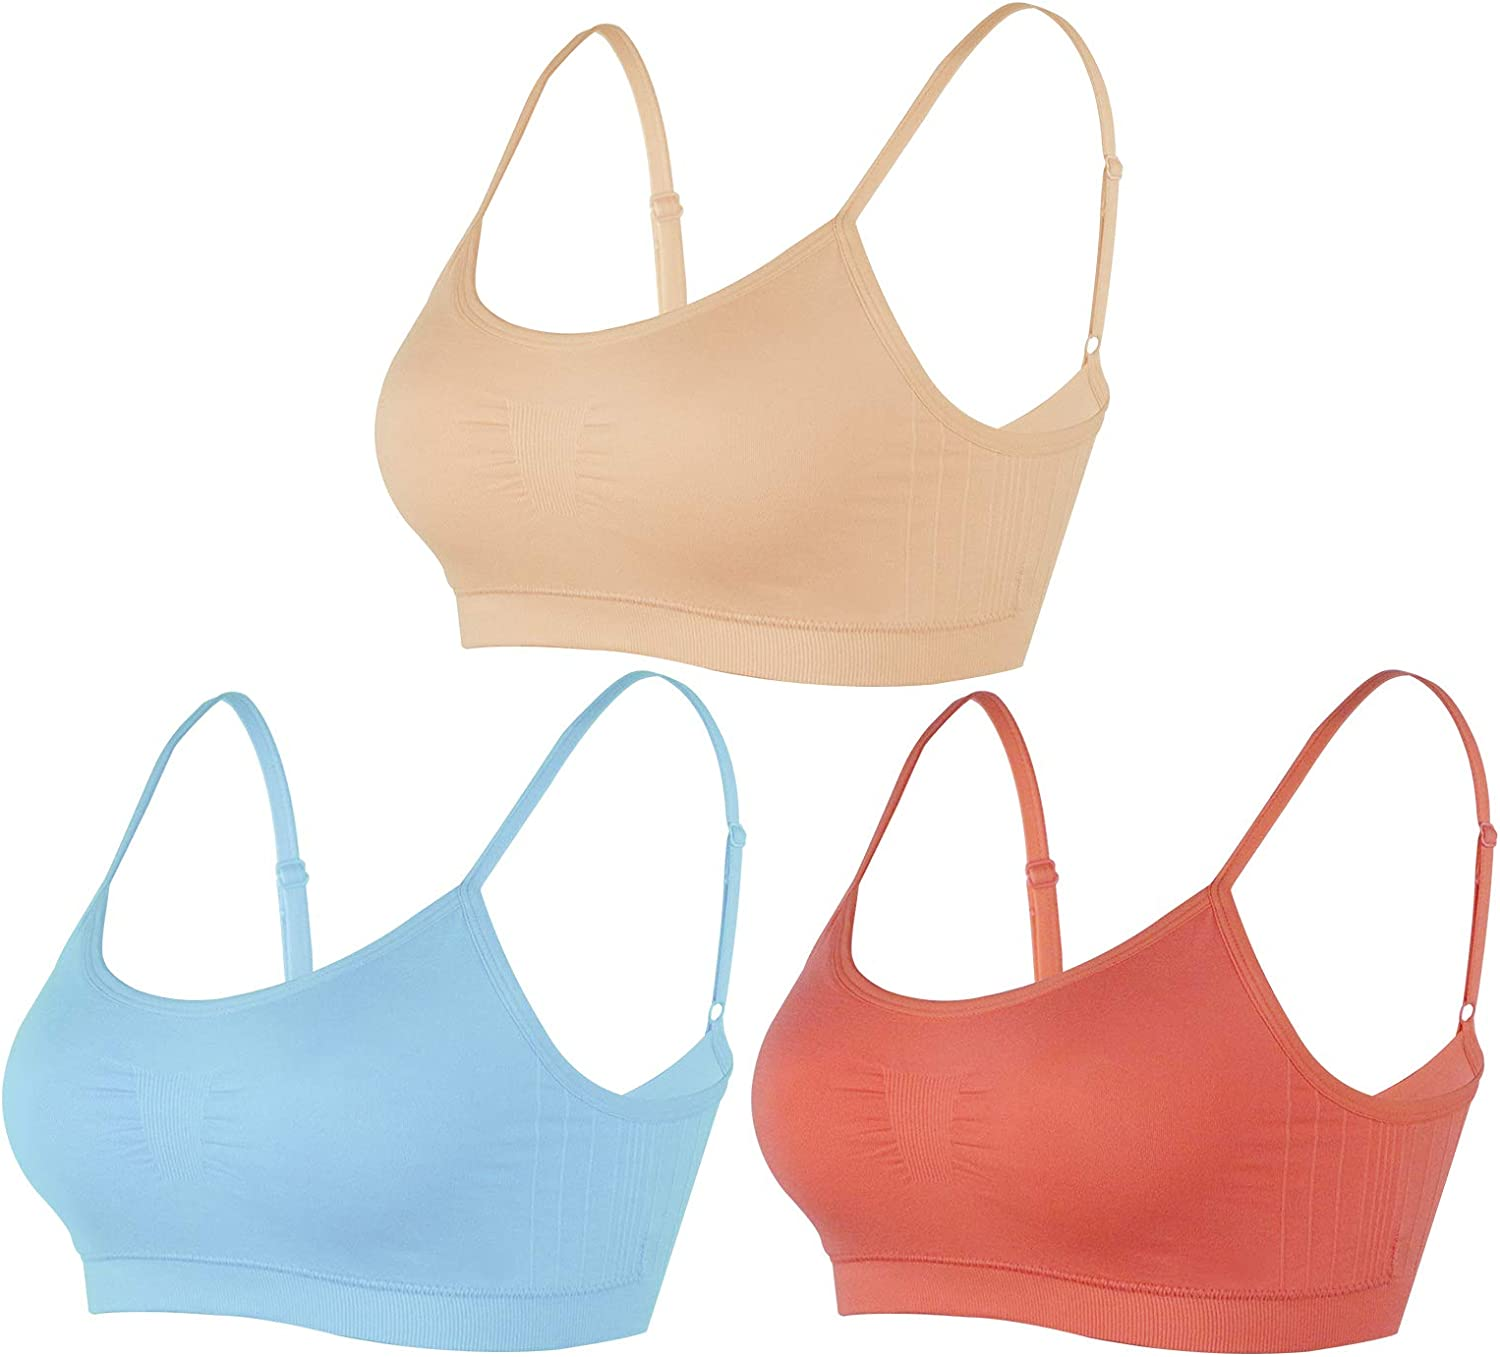 BANG BANG Women's Seamless Sports Bra with Removable Pads Spaghetti Strap Yoga Bras 1-4 Pack